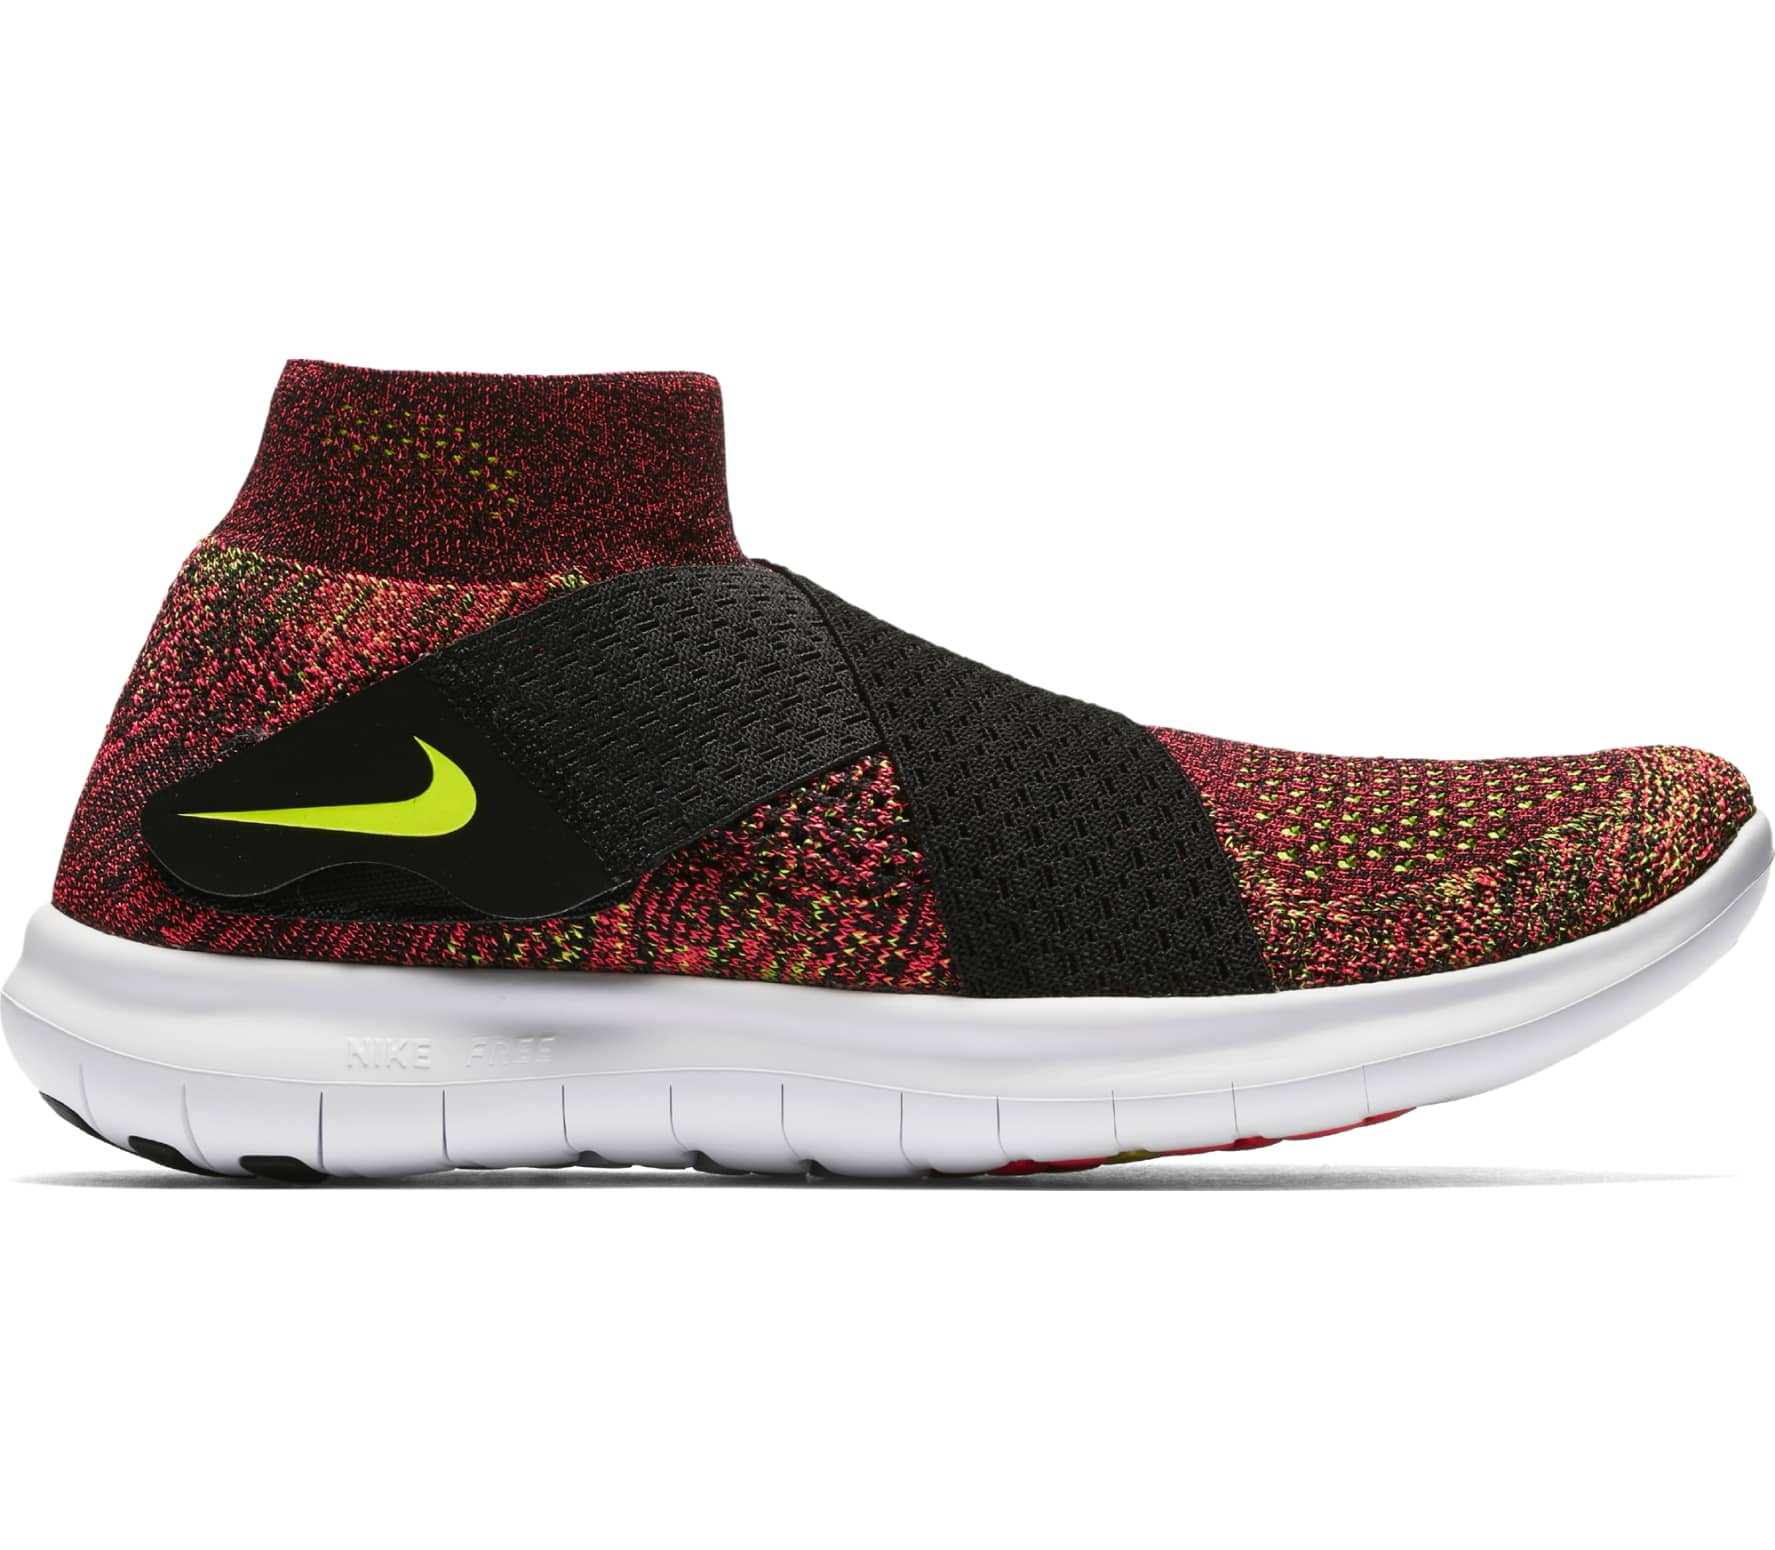 low priced 9b087 fb63e Nike - Free RN Motion Flyknit 2 zapatillas de running para mujer (rojo/negro